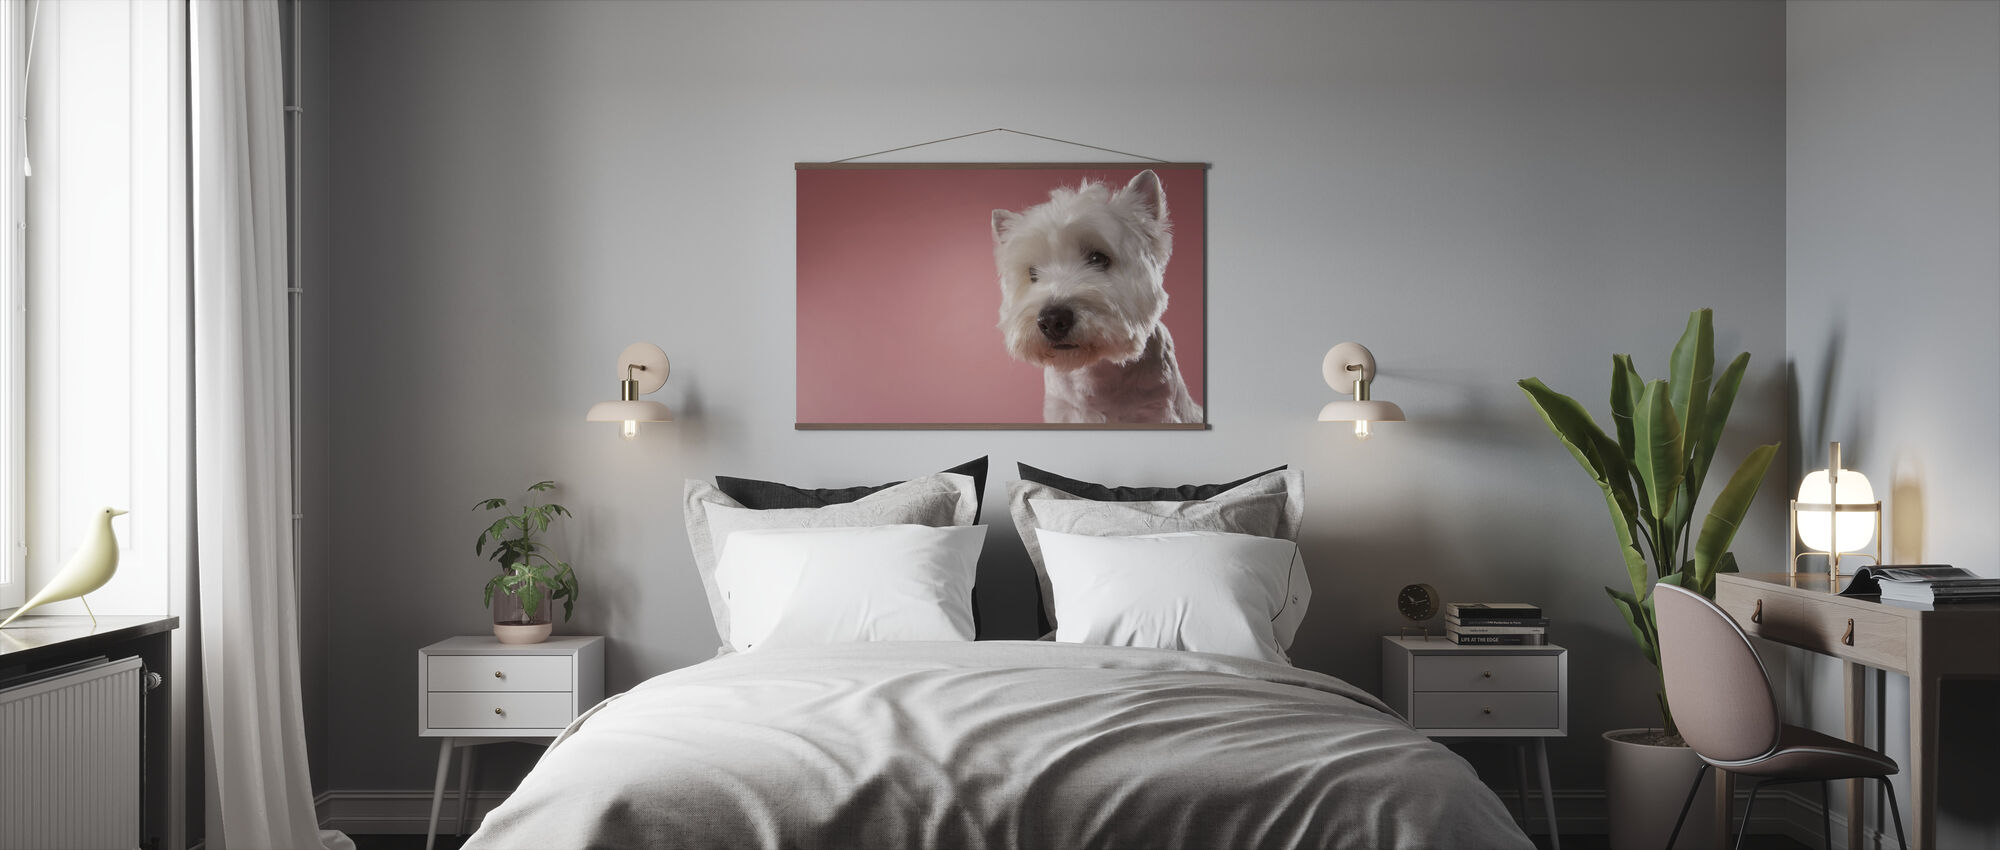 West Highland Terrier - Poster - Bedroom